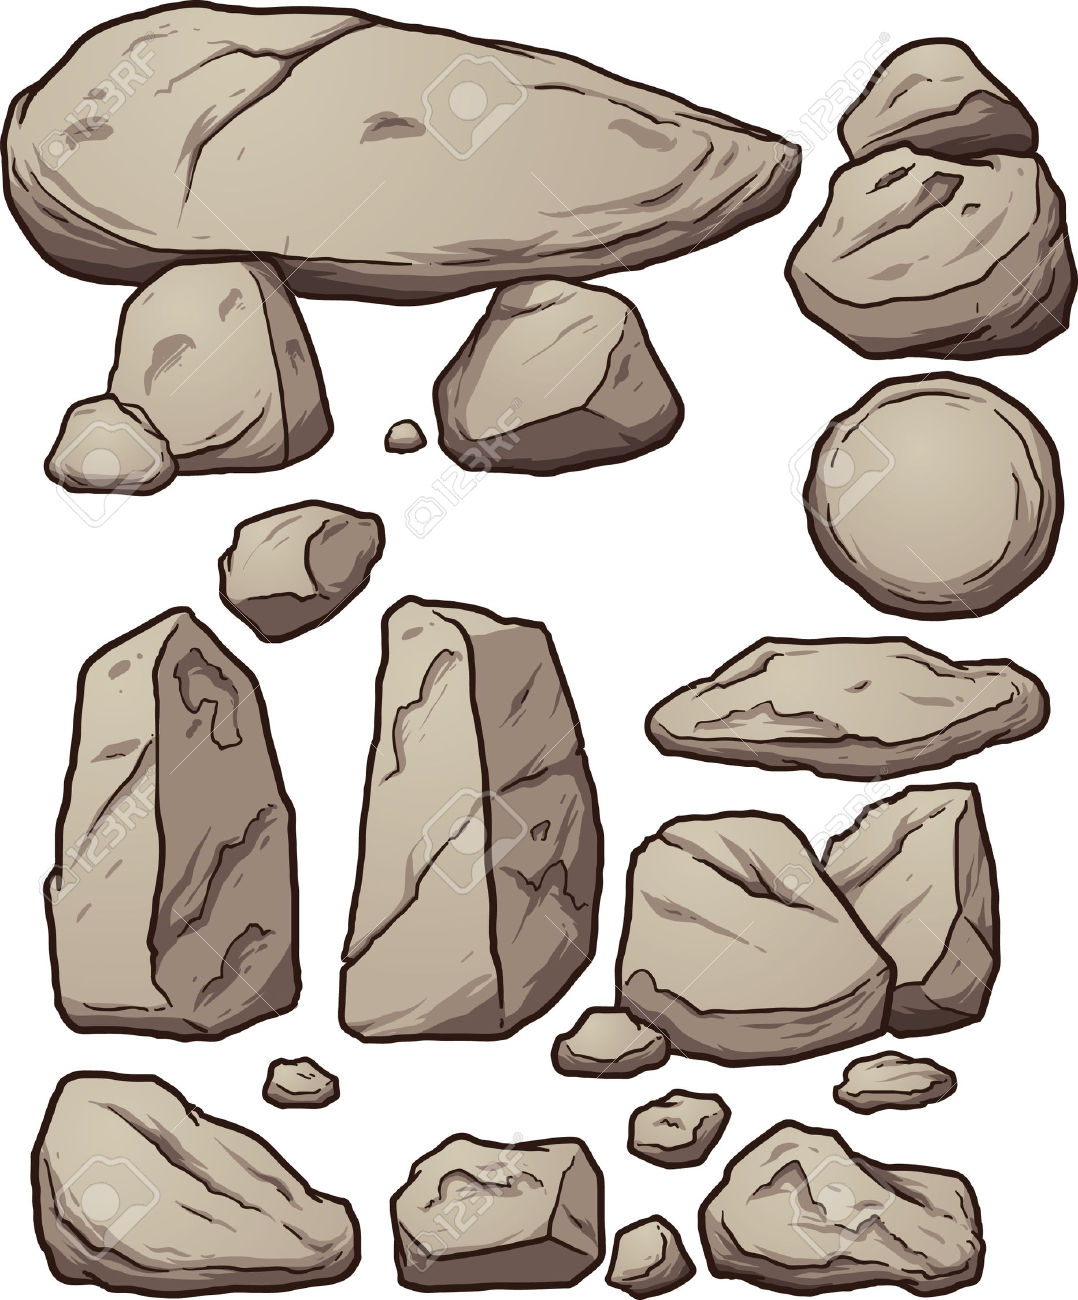 Boulder clipart #6, Download drawings